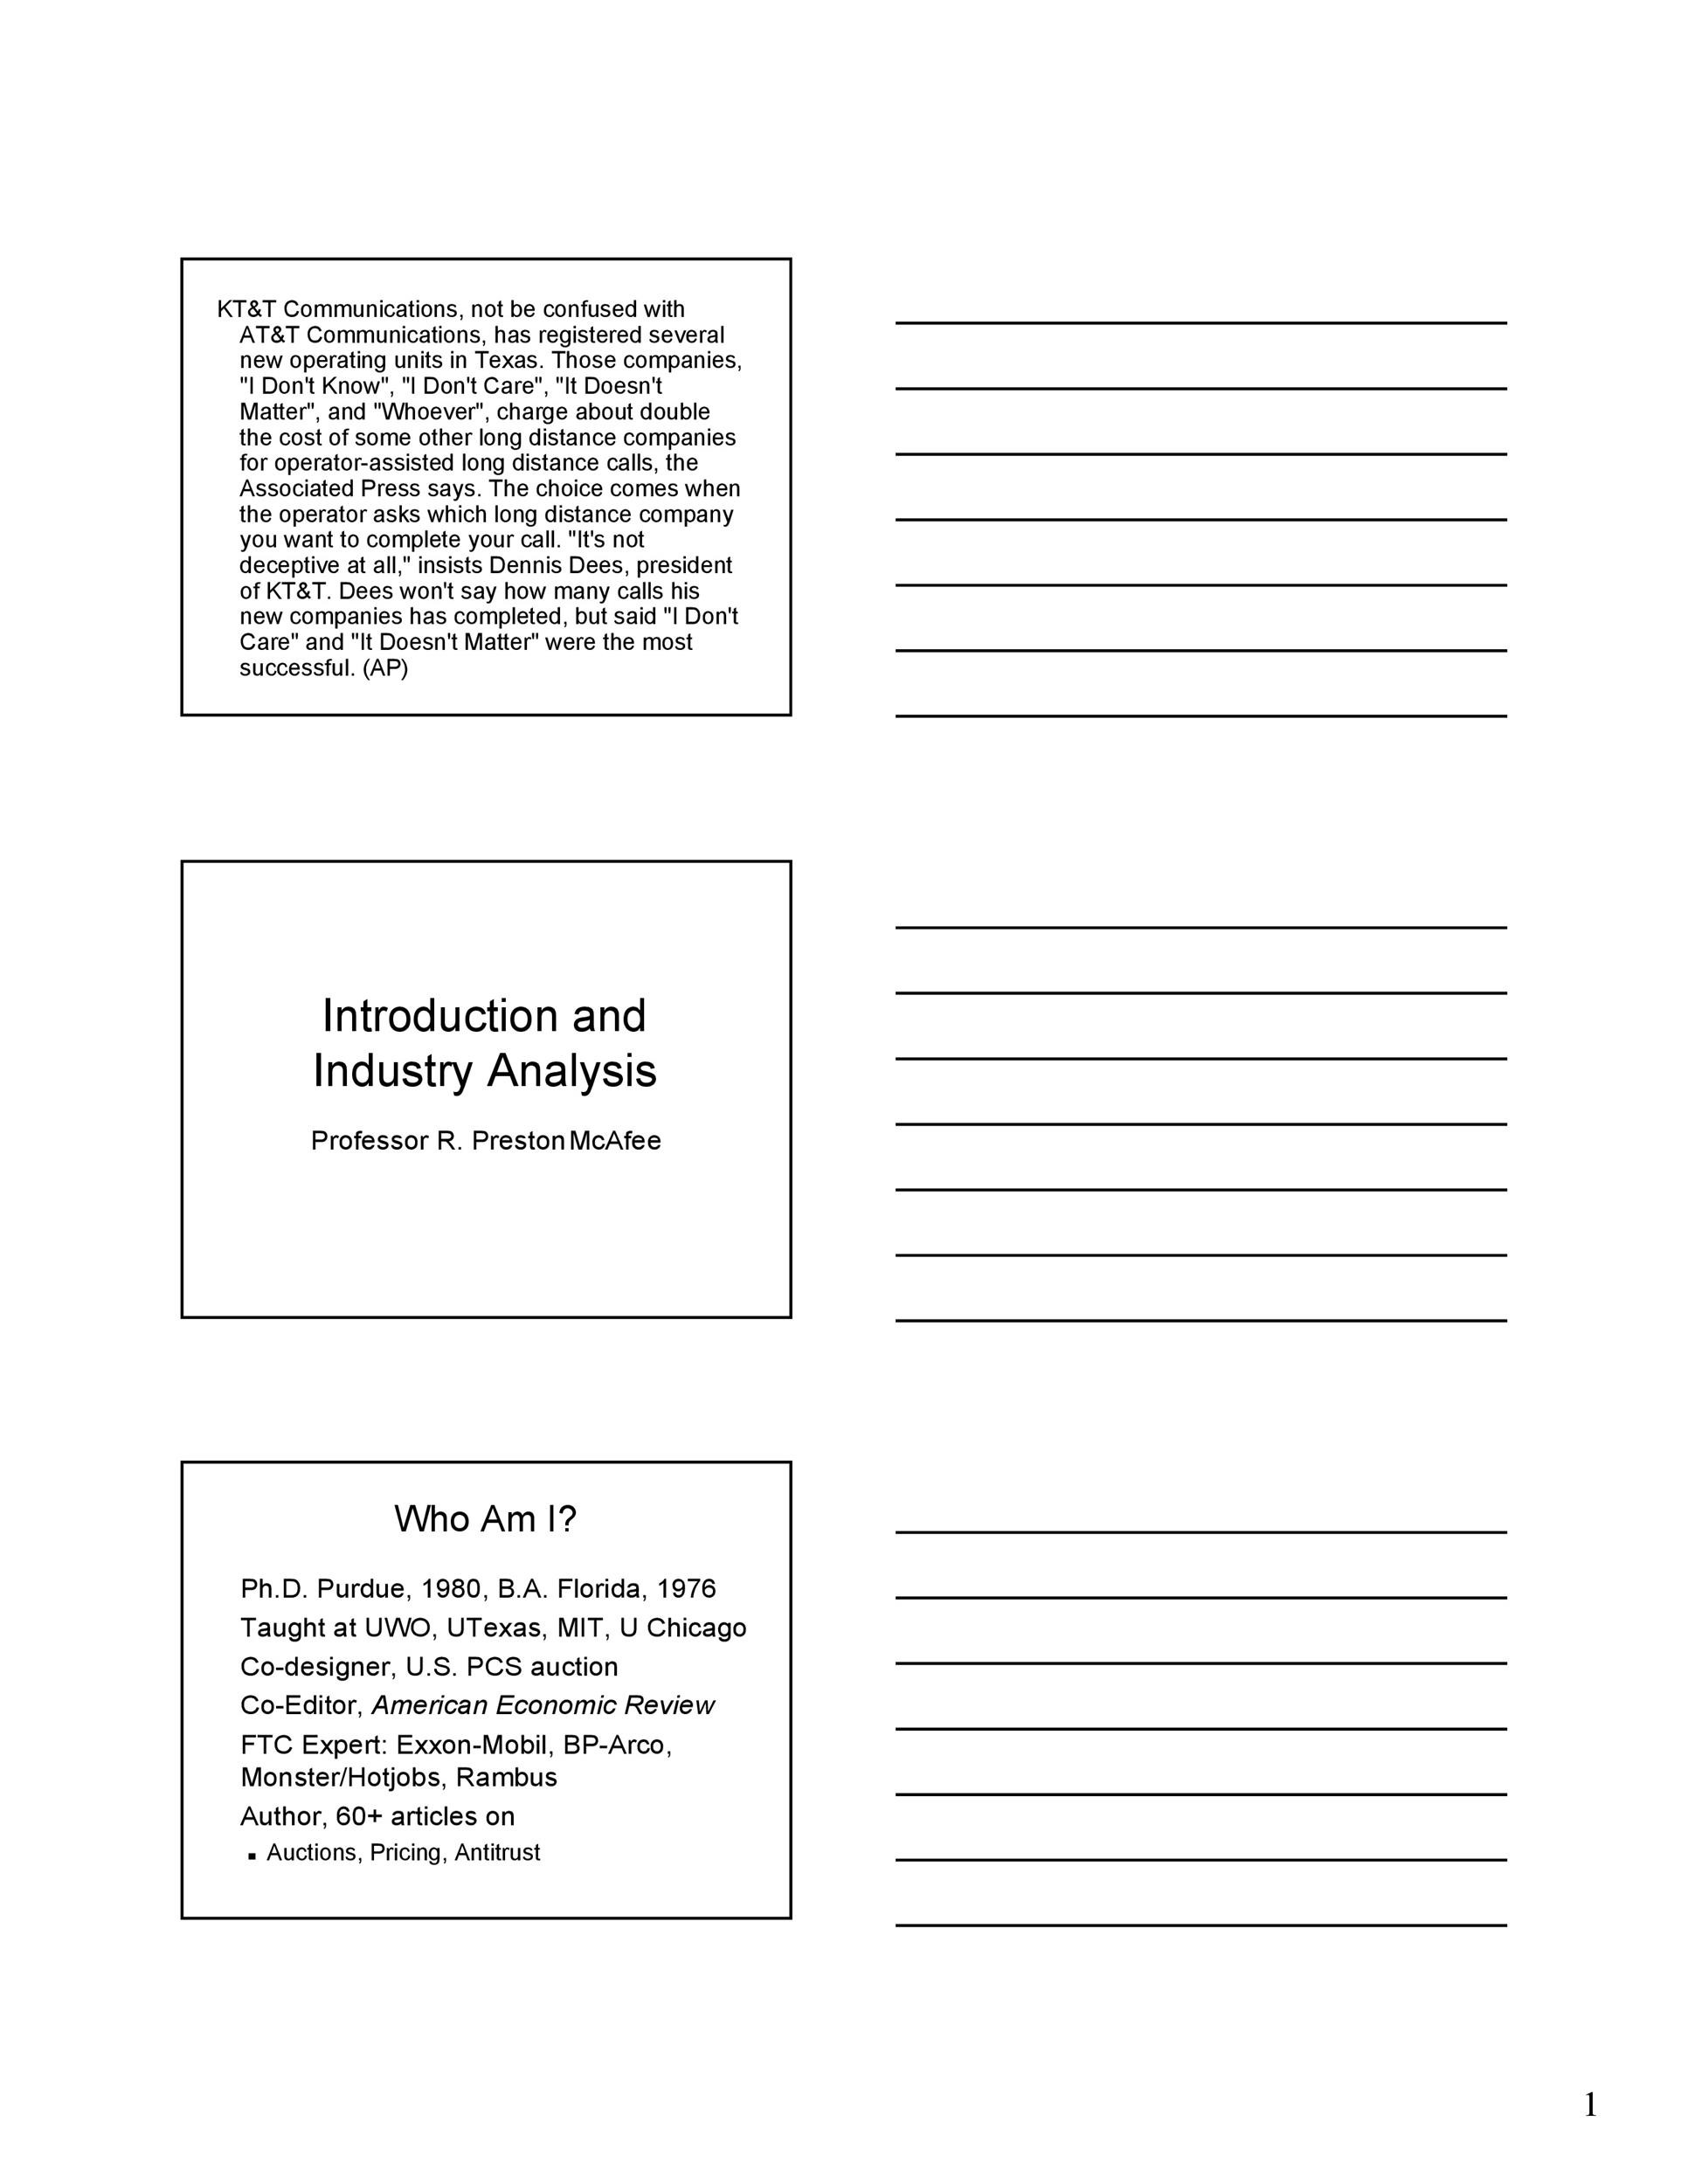 Free industry analysis example 21